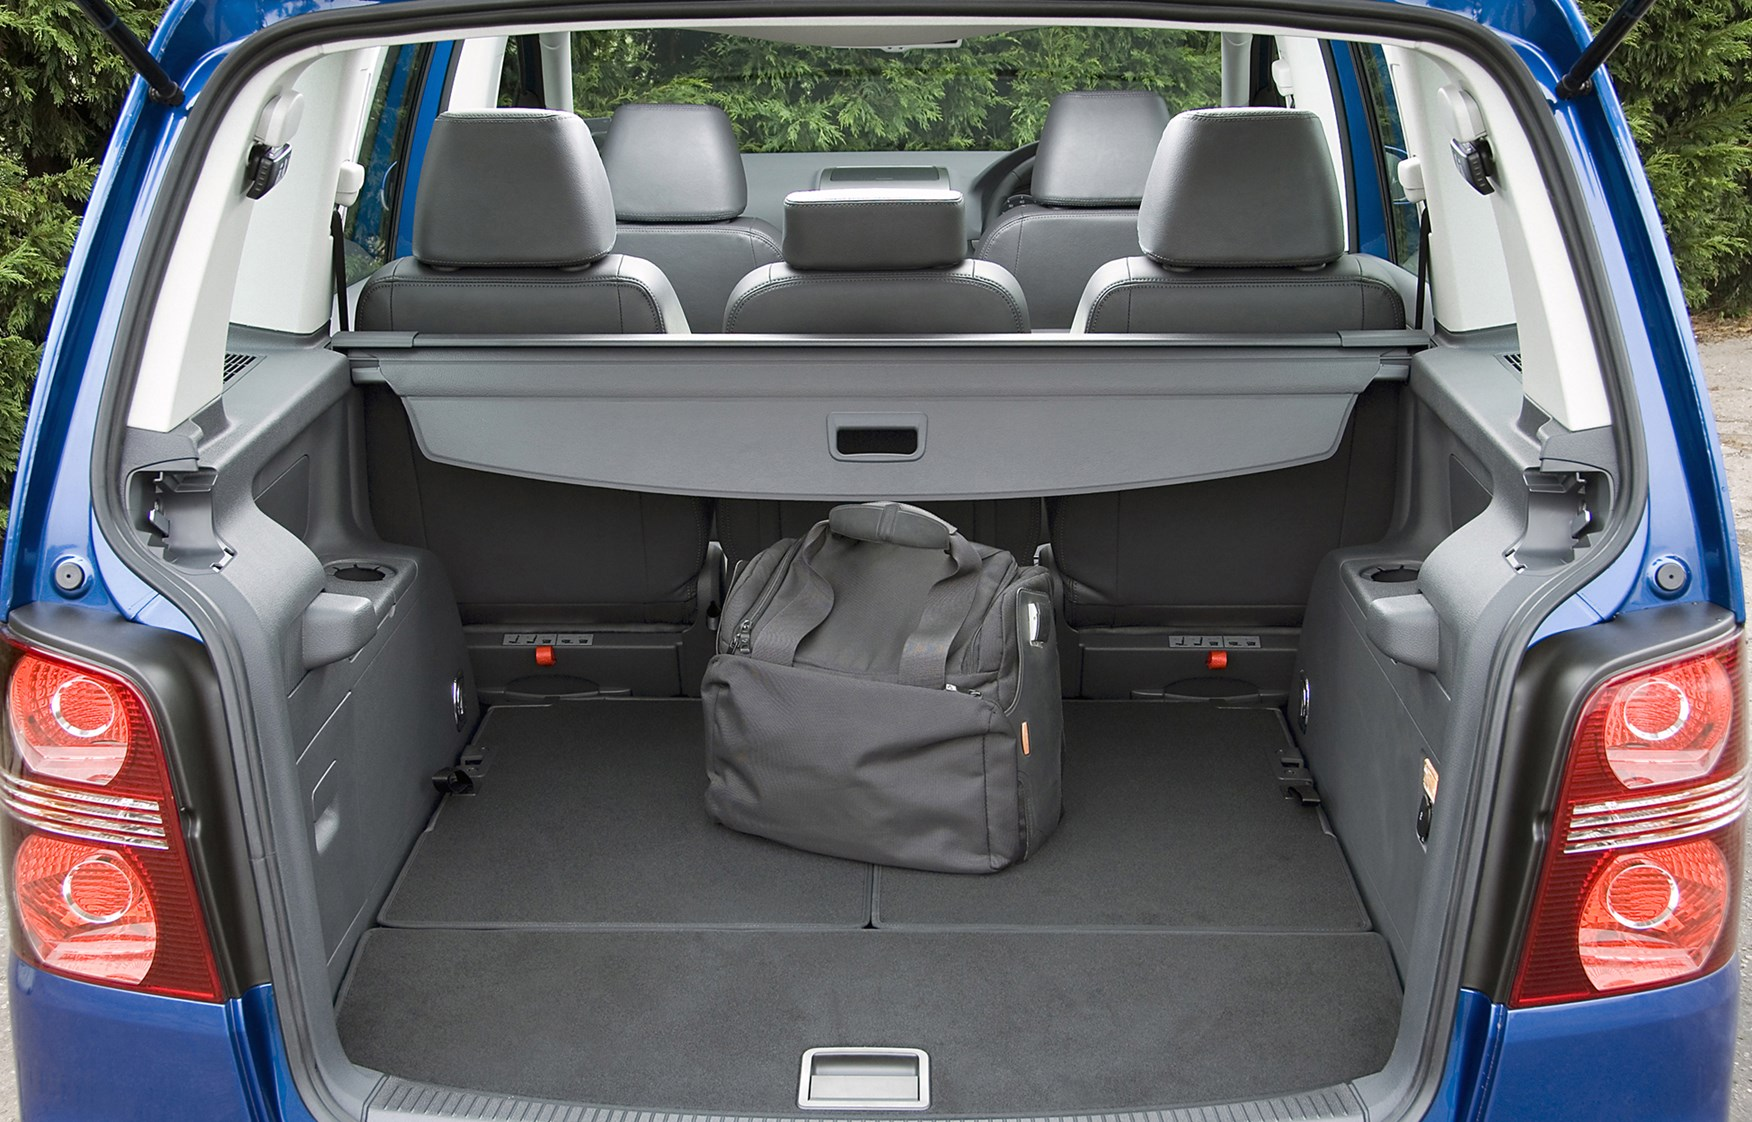 Used Volkswagen Touran Estate (2003 - 2010) Review | Parkers